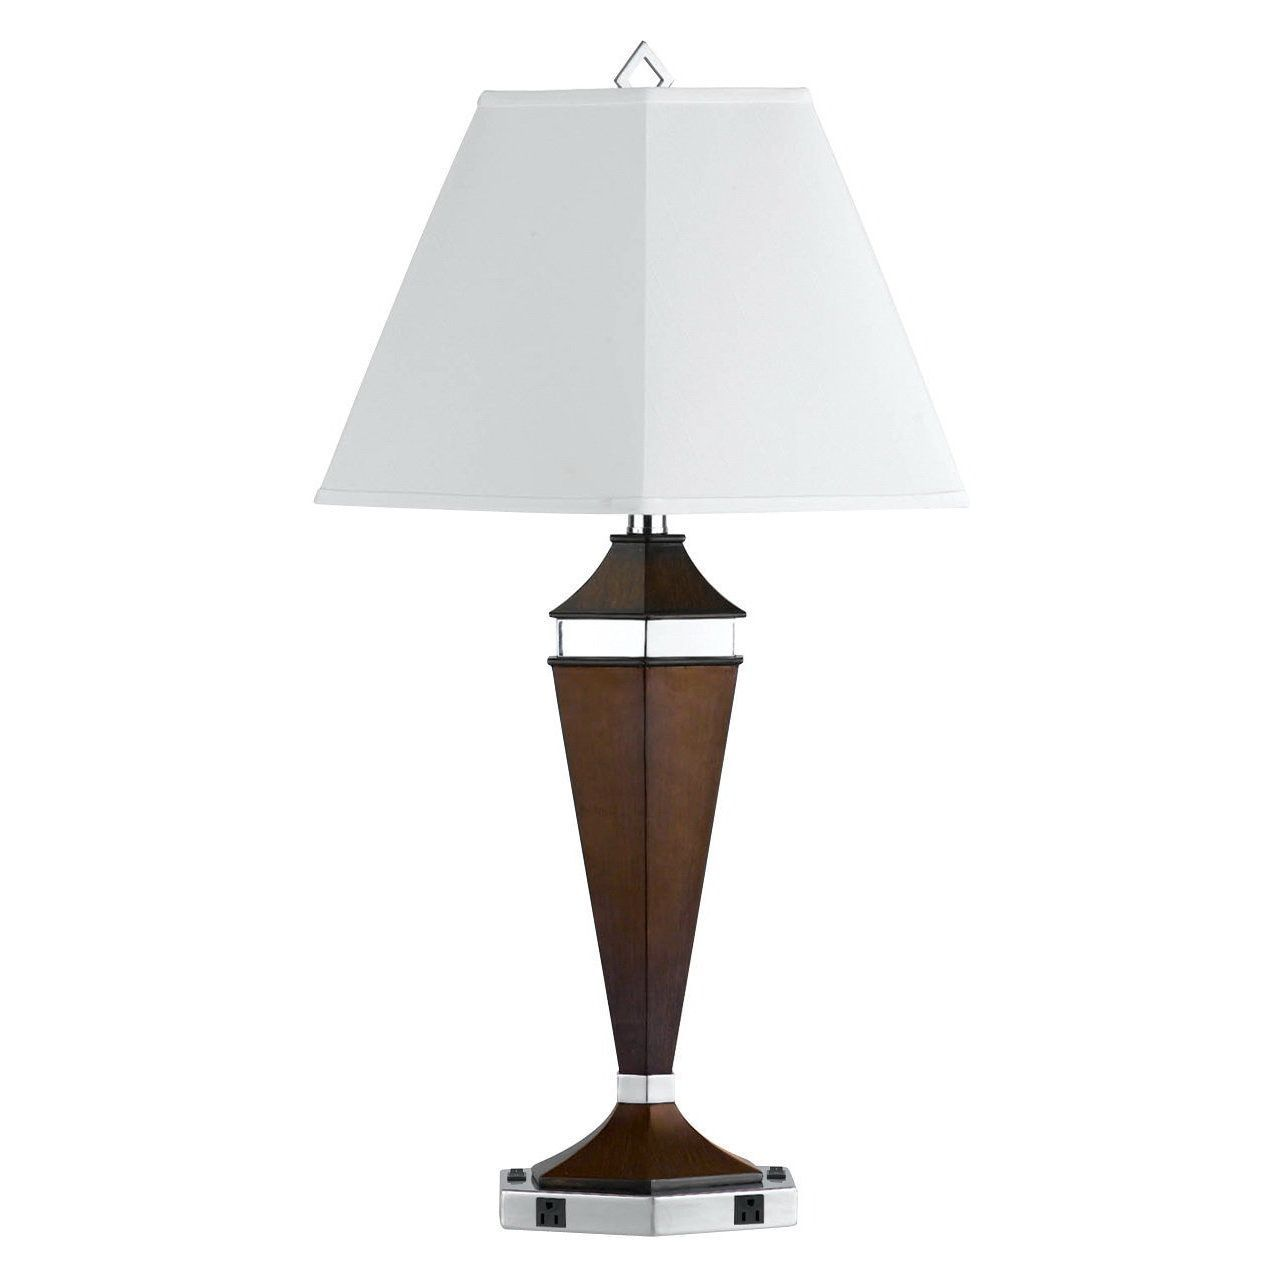 White/Silver/Brown Metal Two-outlet Table Lamp (Table Lamp)